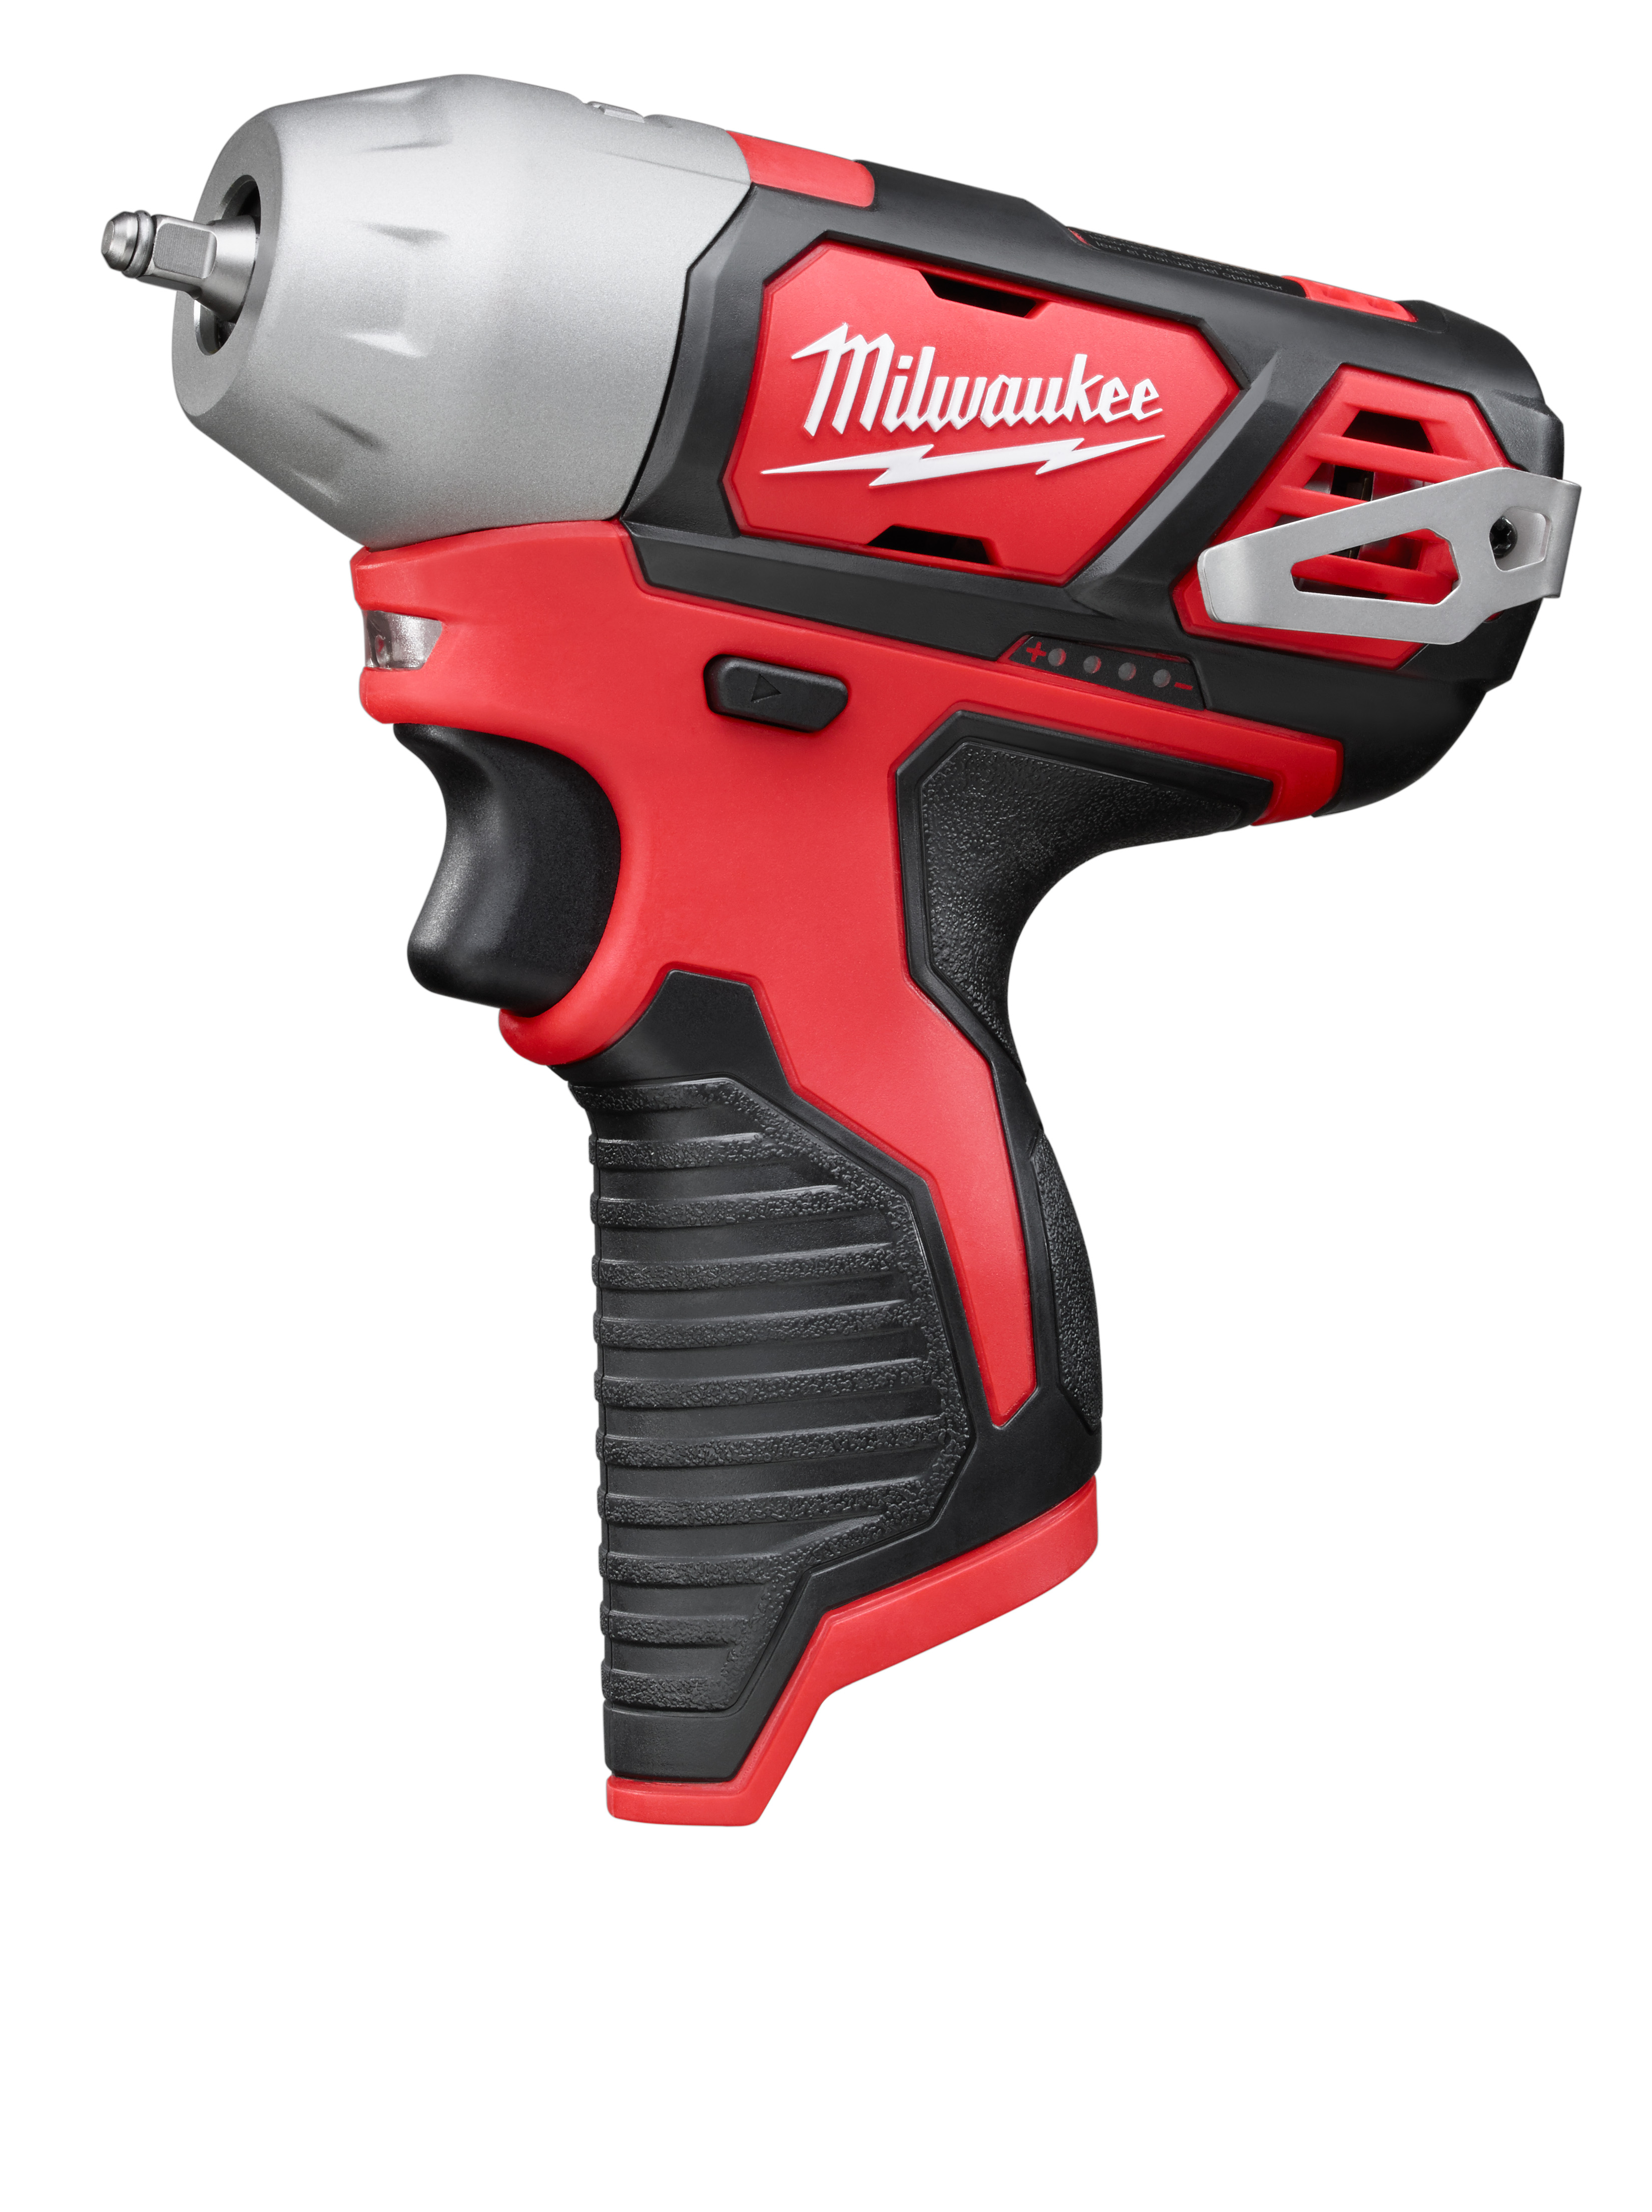 Milwaukee® M12™ 2461-20 Compact Cordless Impact Wrench With Friction Ring, 1/4 in Square Drive, 3800 bpm, 450 in-lb Torque, 12 VDC, 6 in OAL